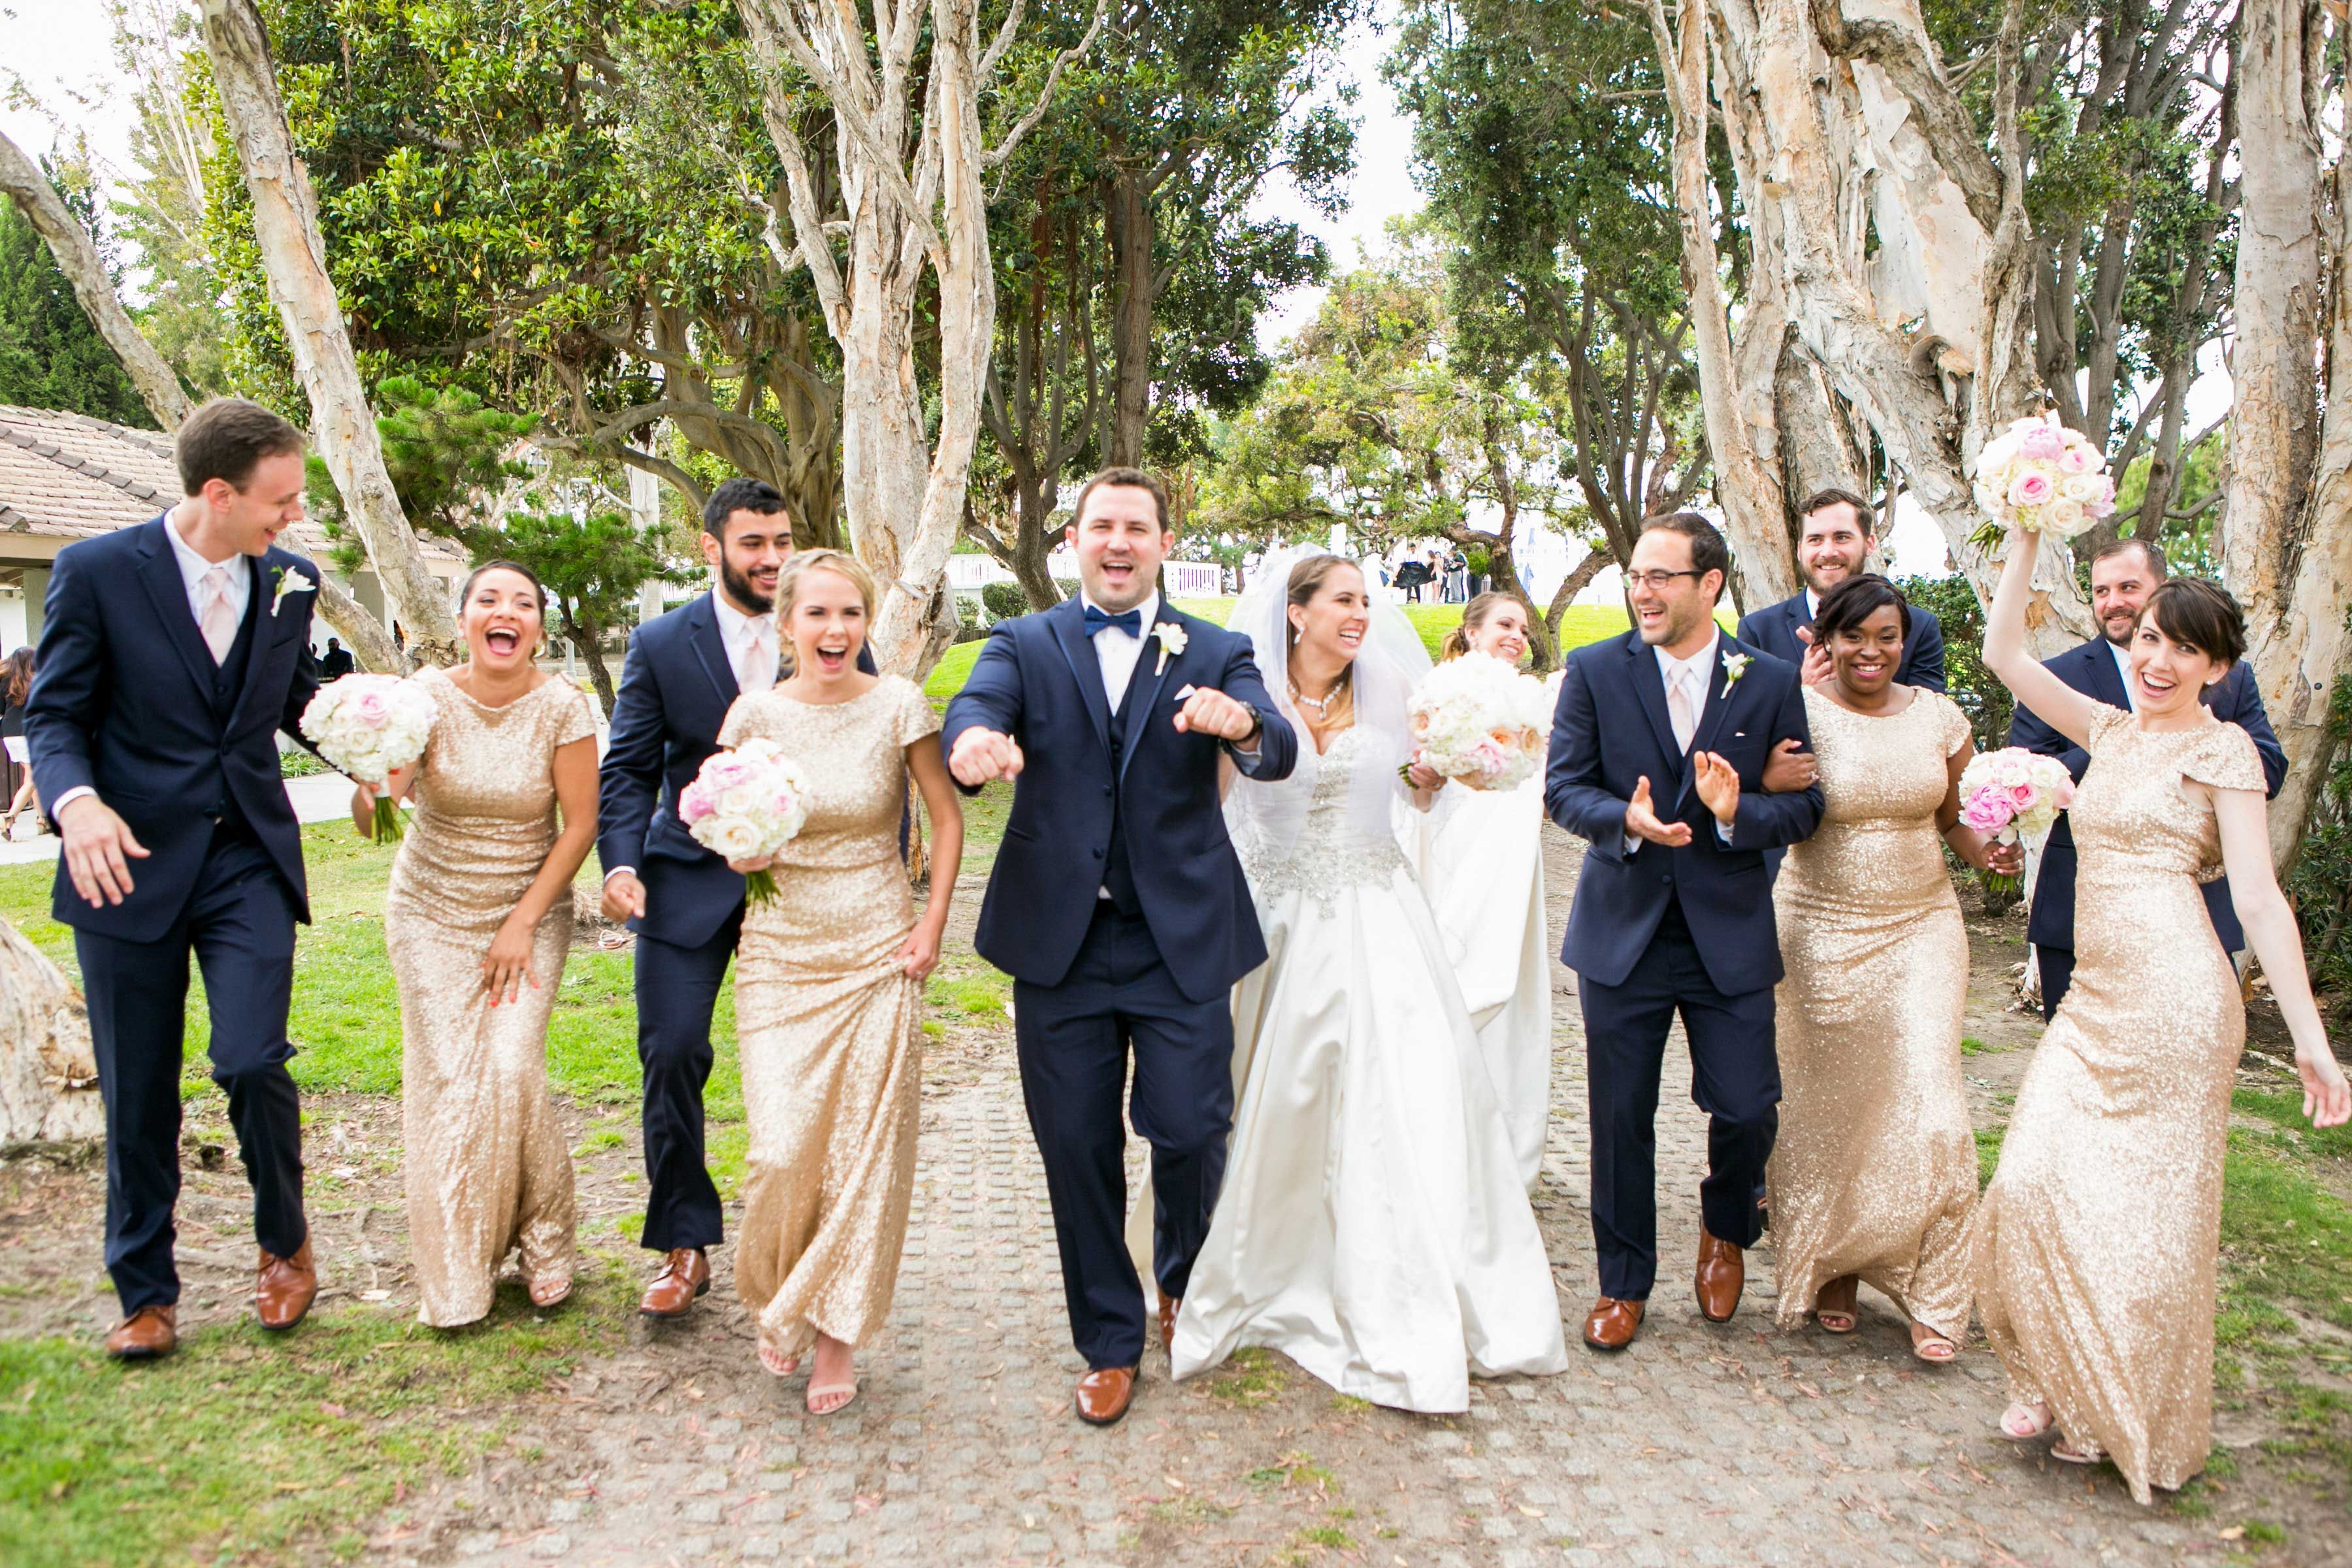 13 Poses To Showcase Your Bridal Party Wedding Party Poses Wedding Photography Bridal Party Groomsmen Poses